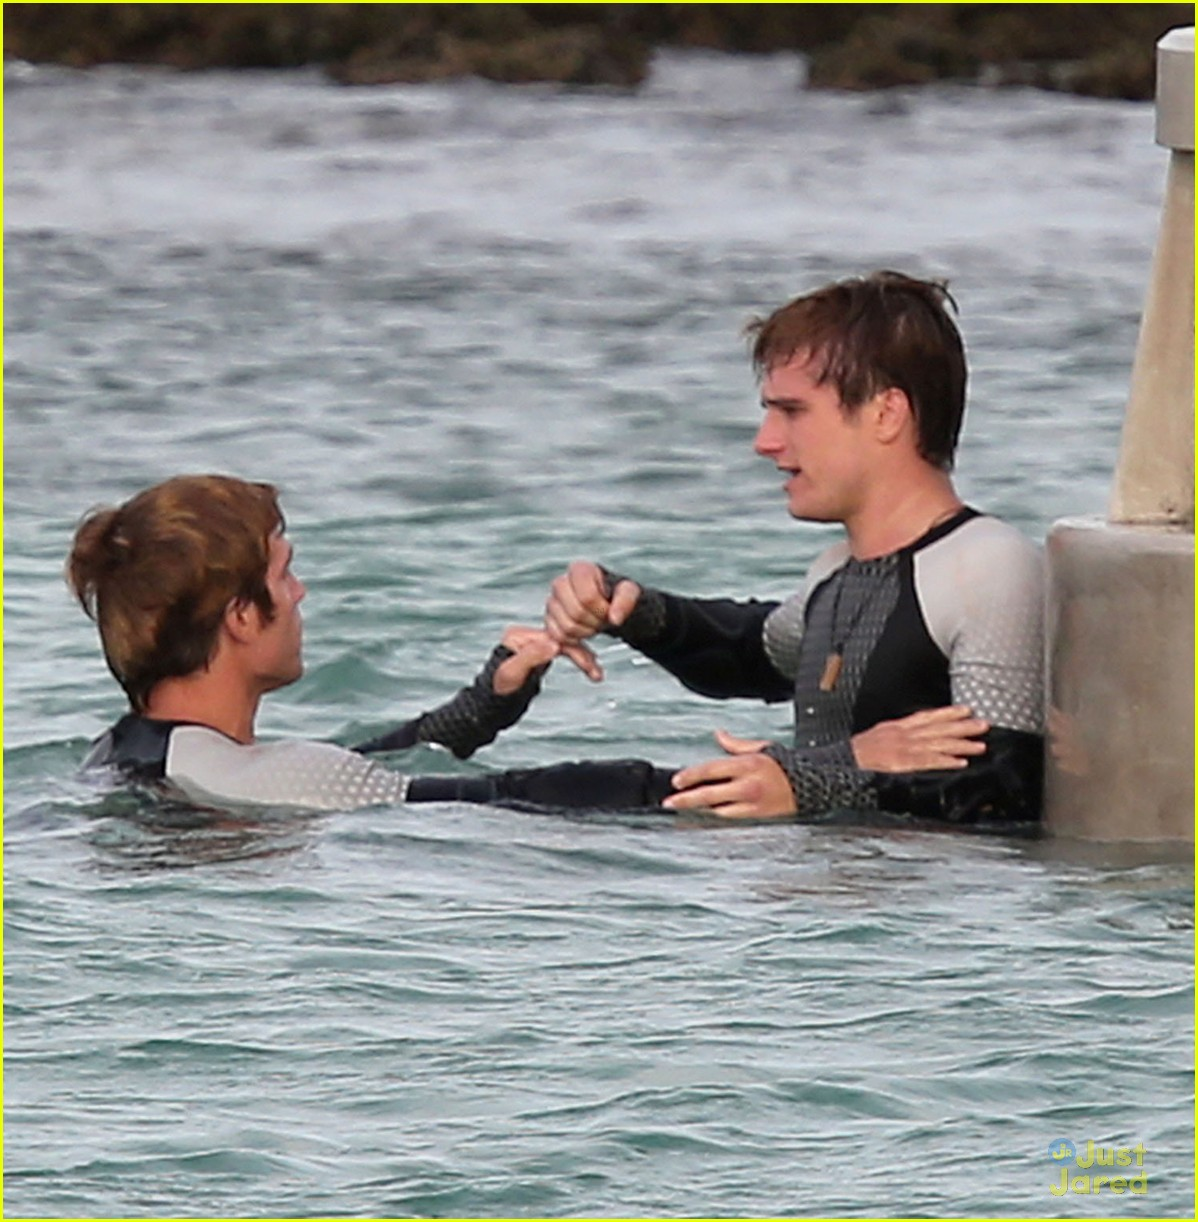 jennifer liam josh thg hawaii 09